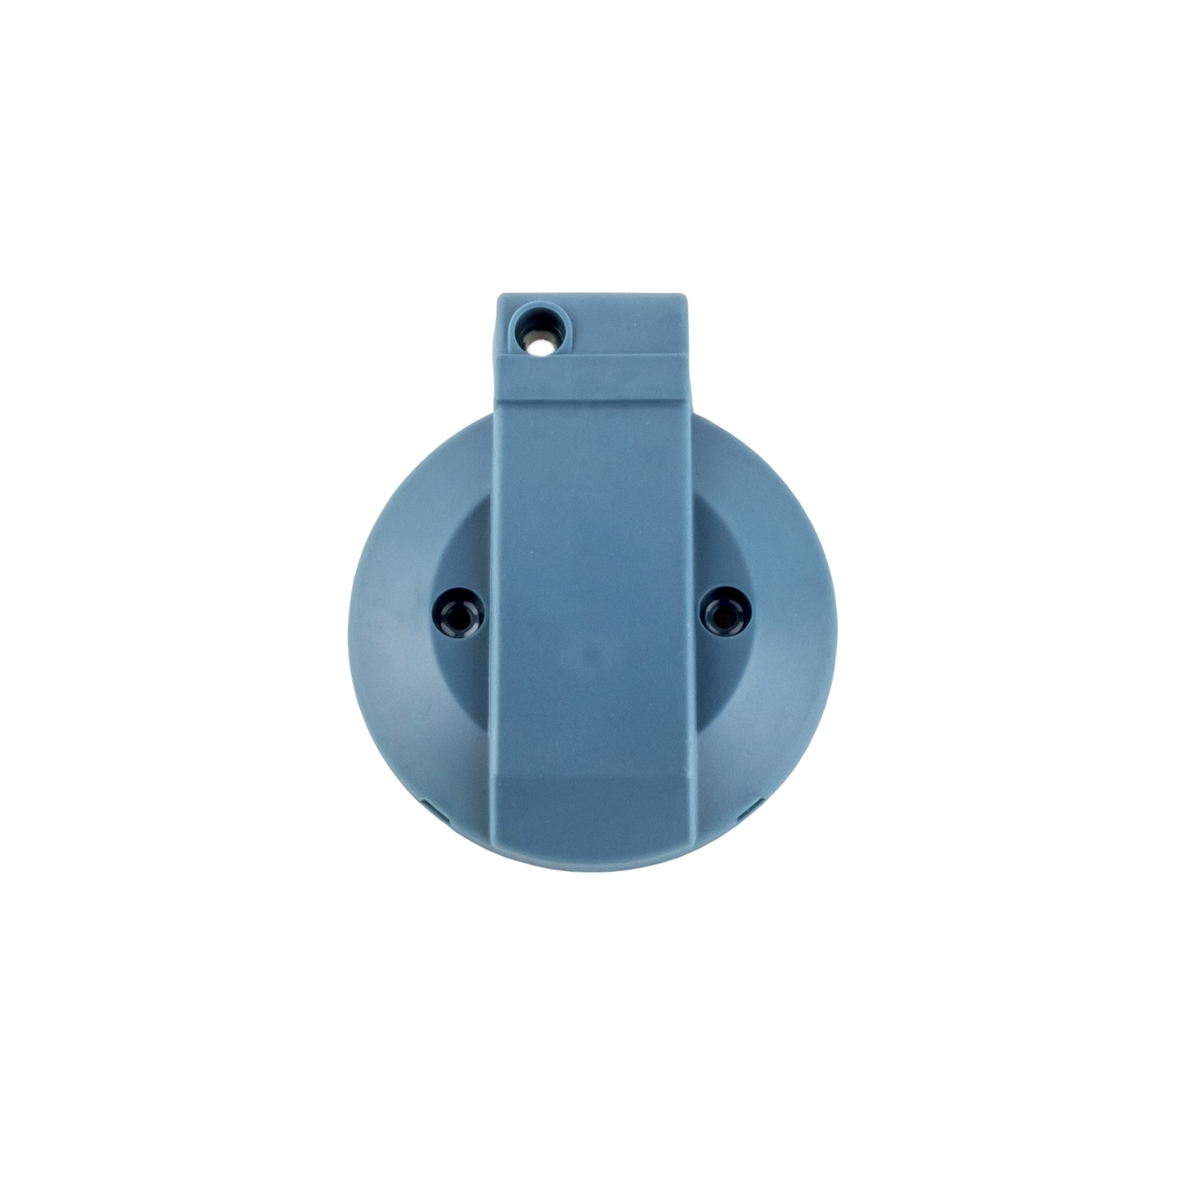 Philips M1355A TOCO M1356A US Transducer Top Case Cover